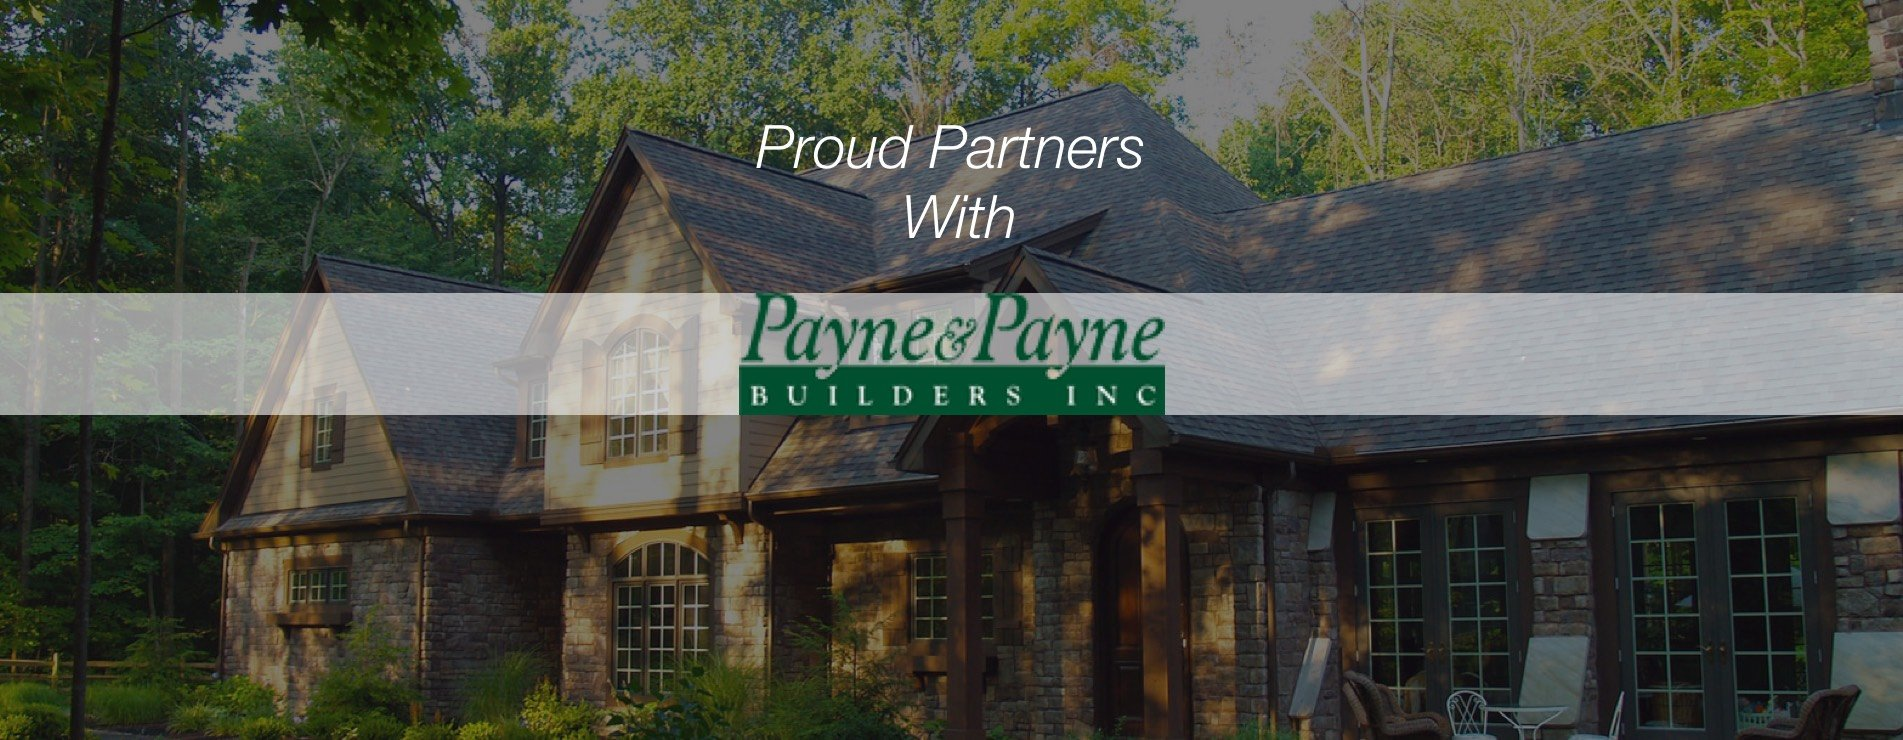 Payne and Payne Builders